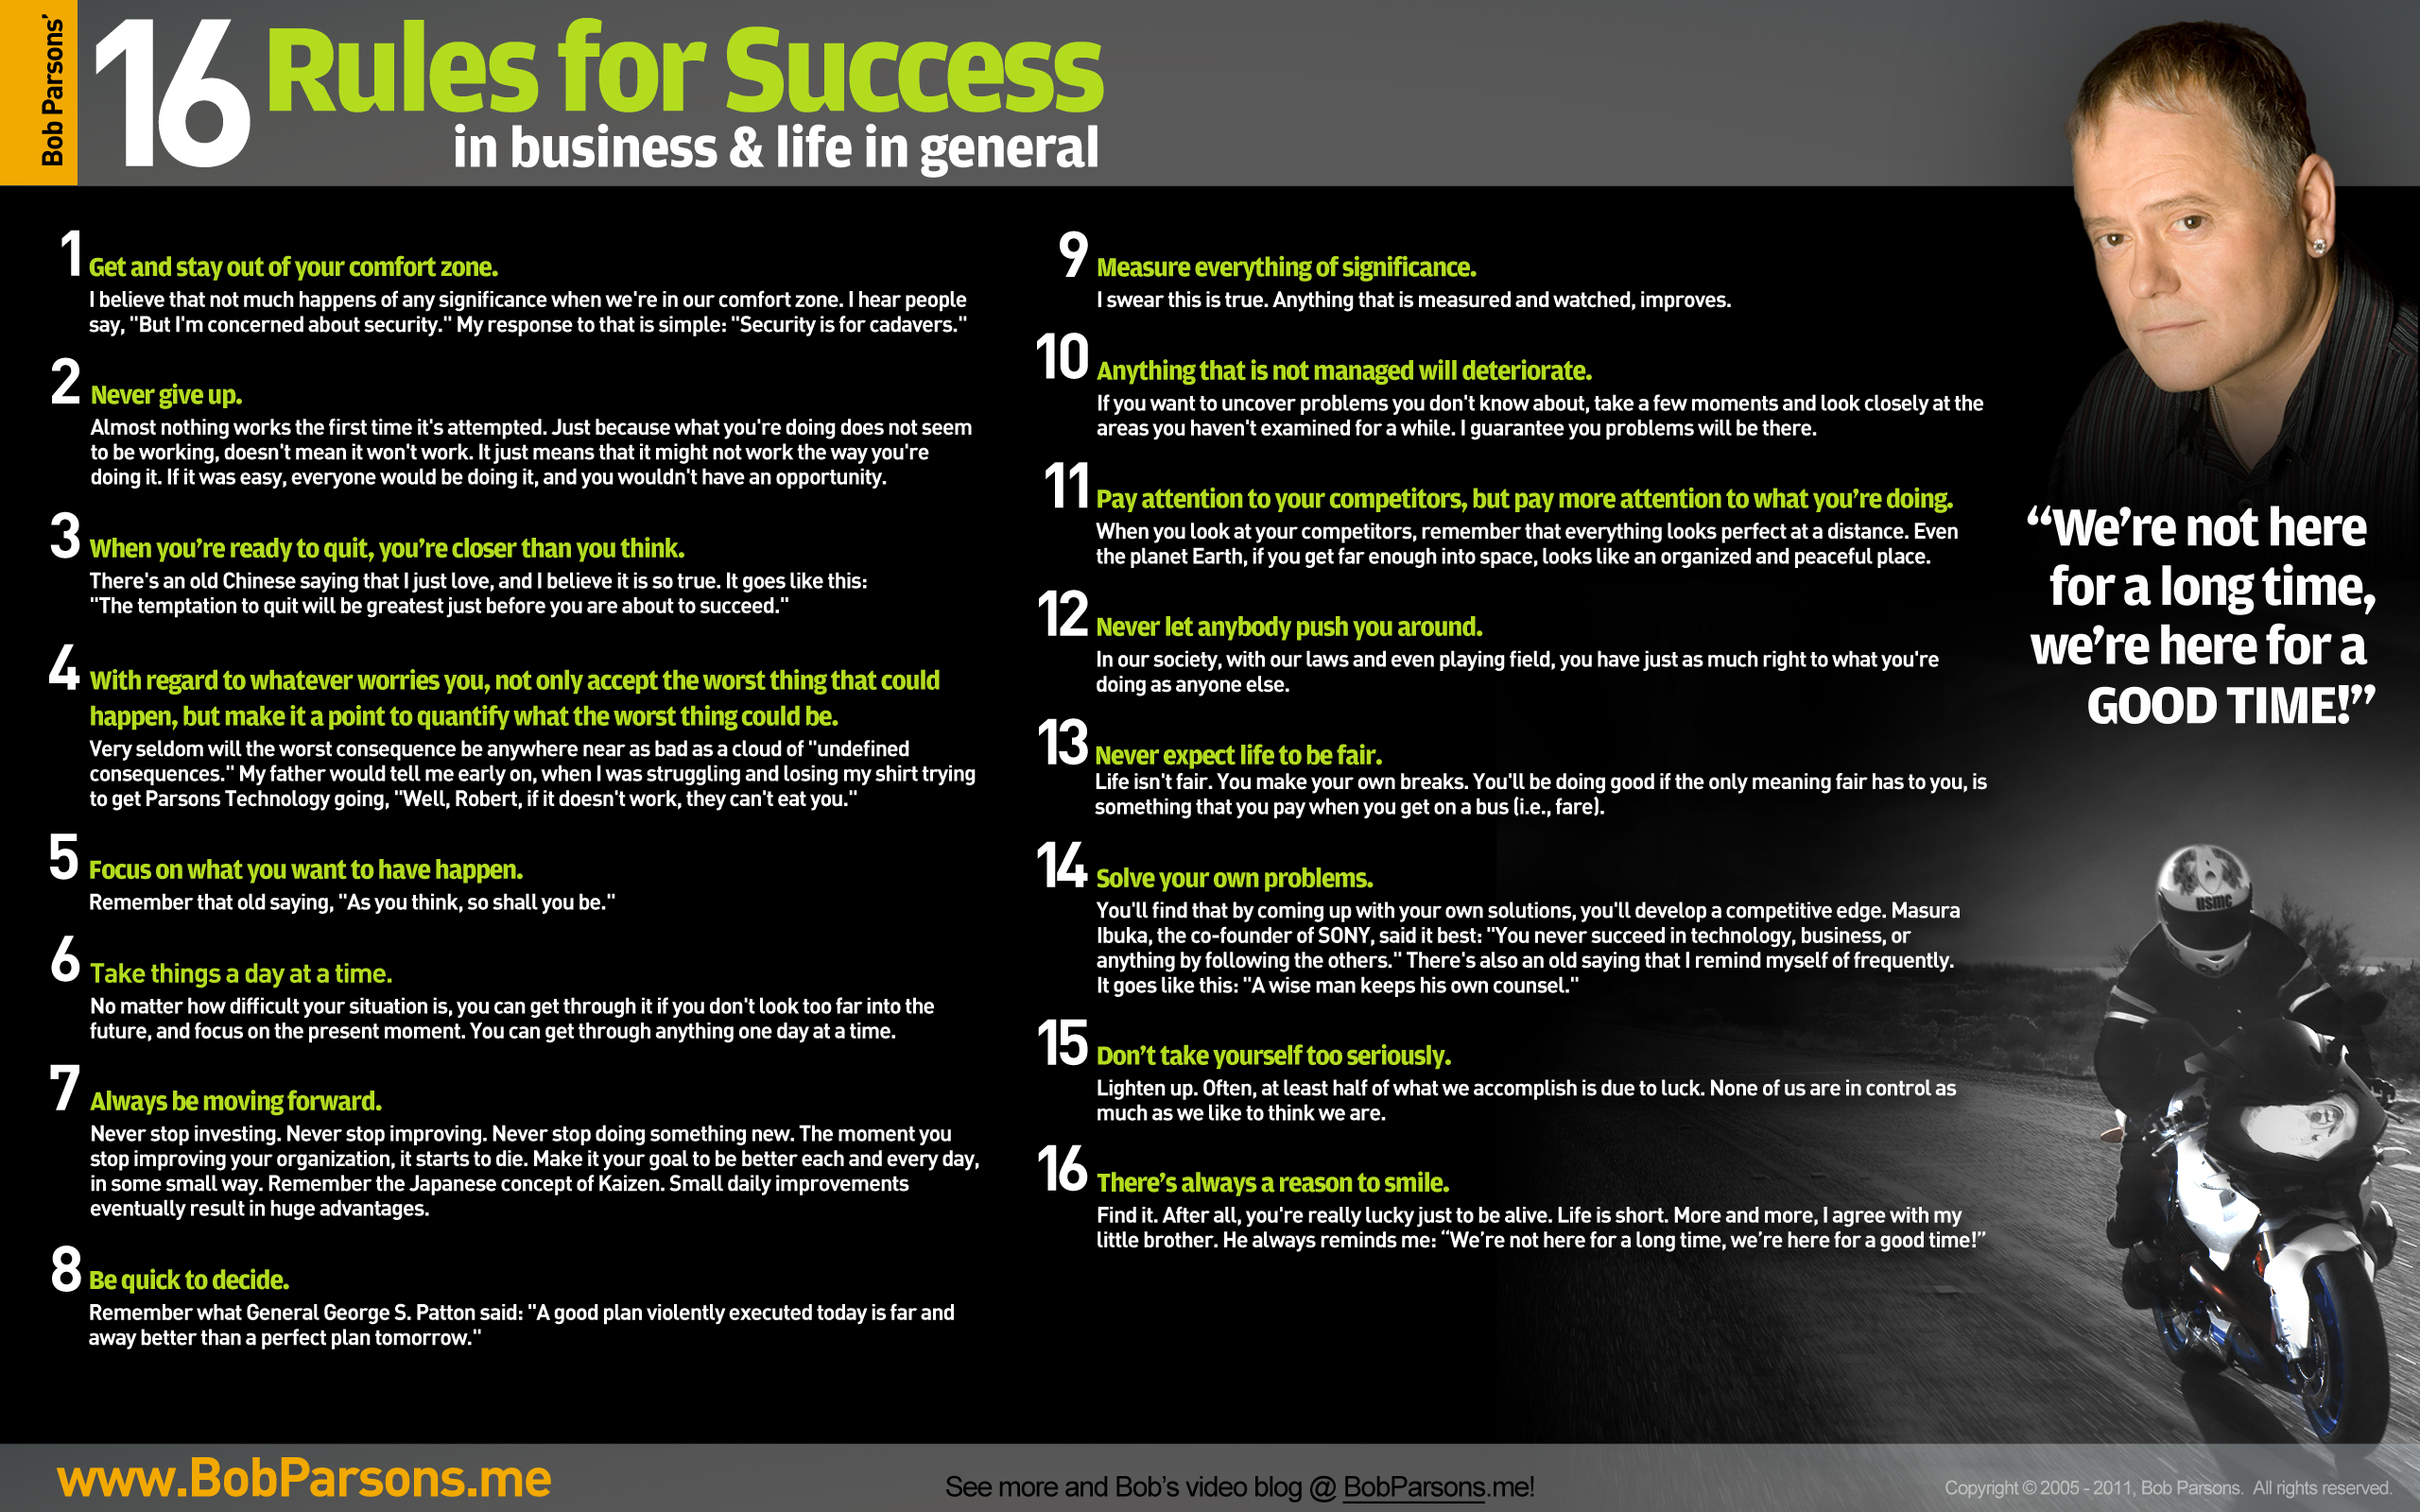 16 Rules of Success